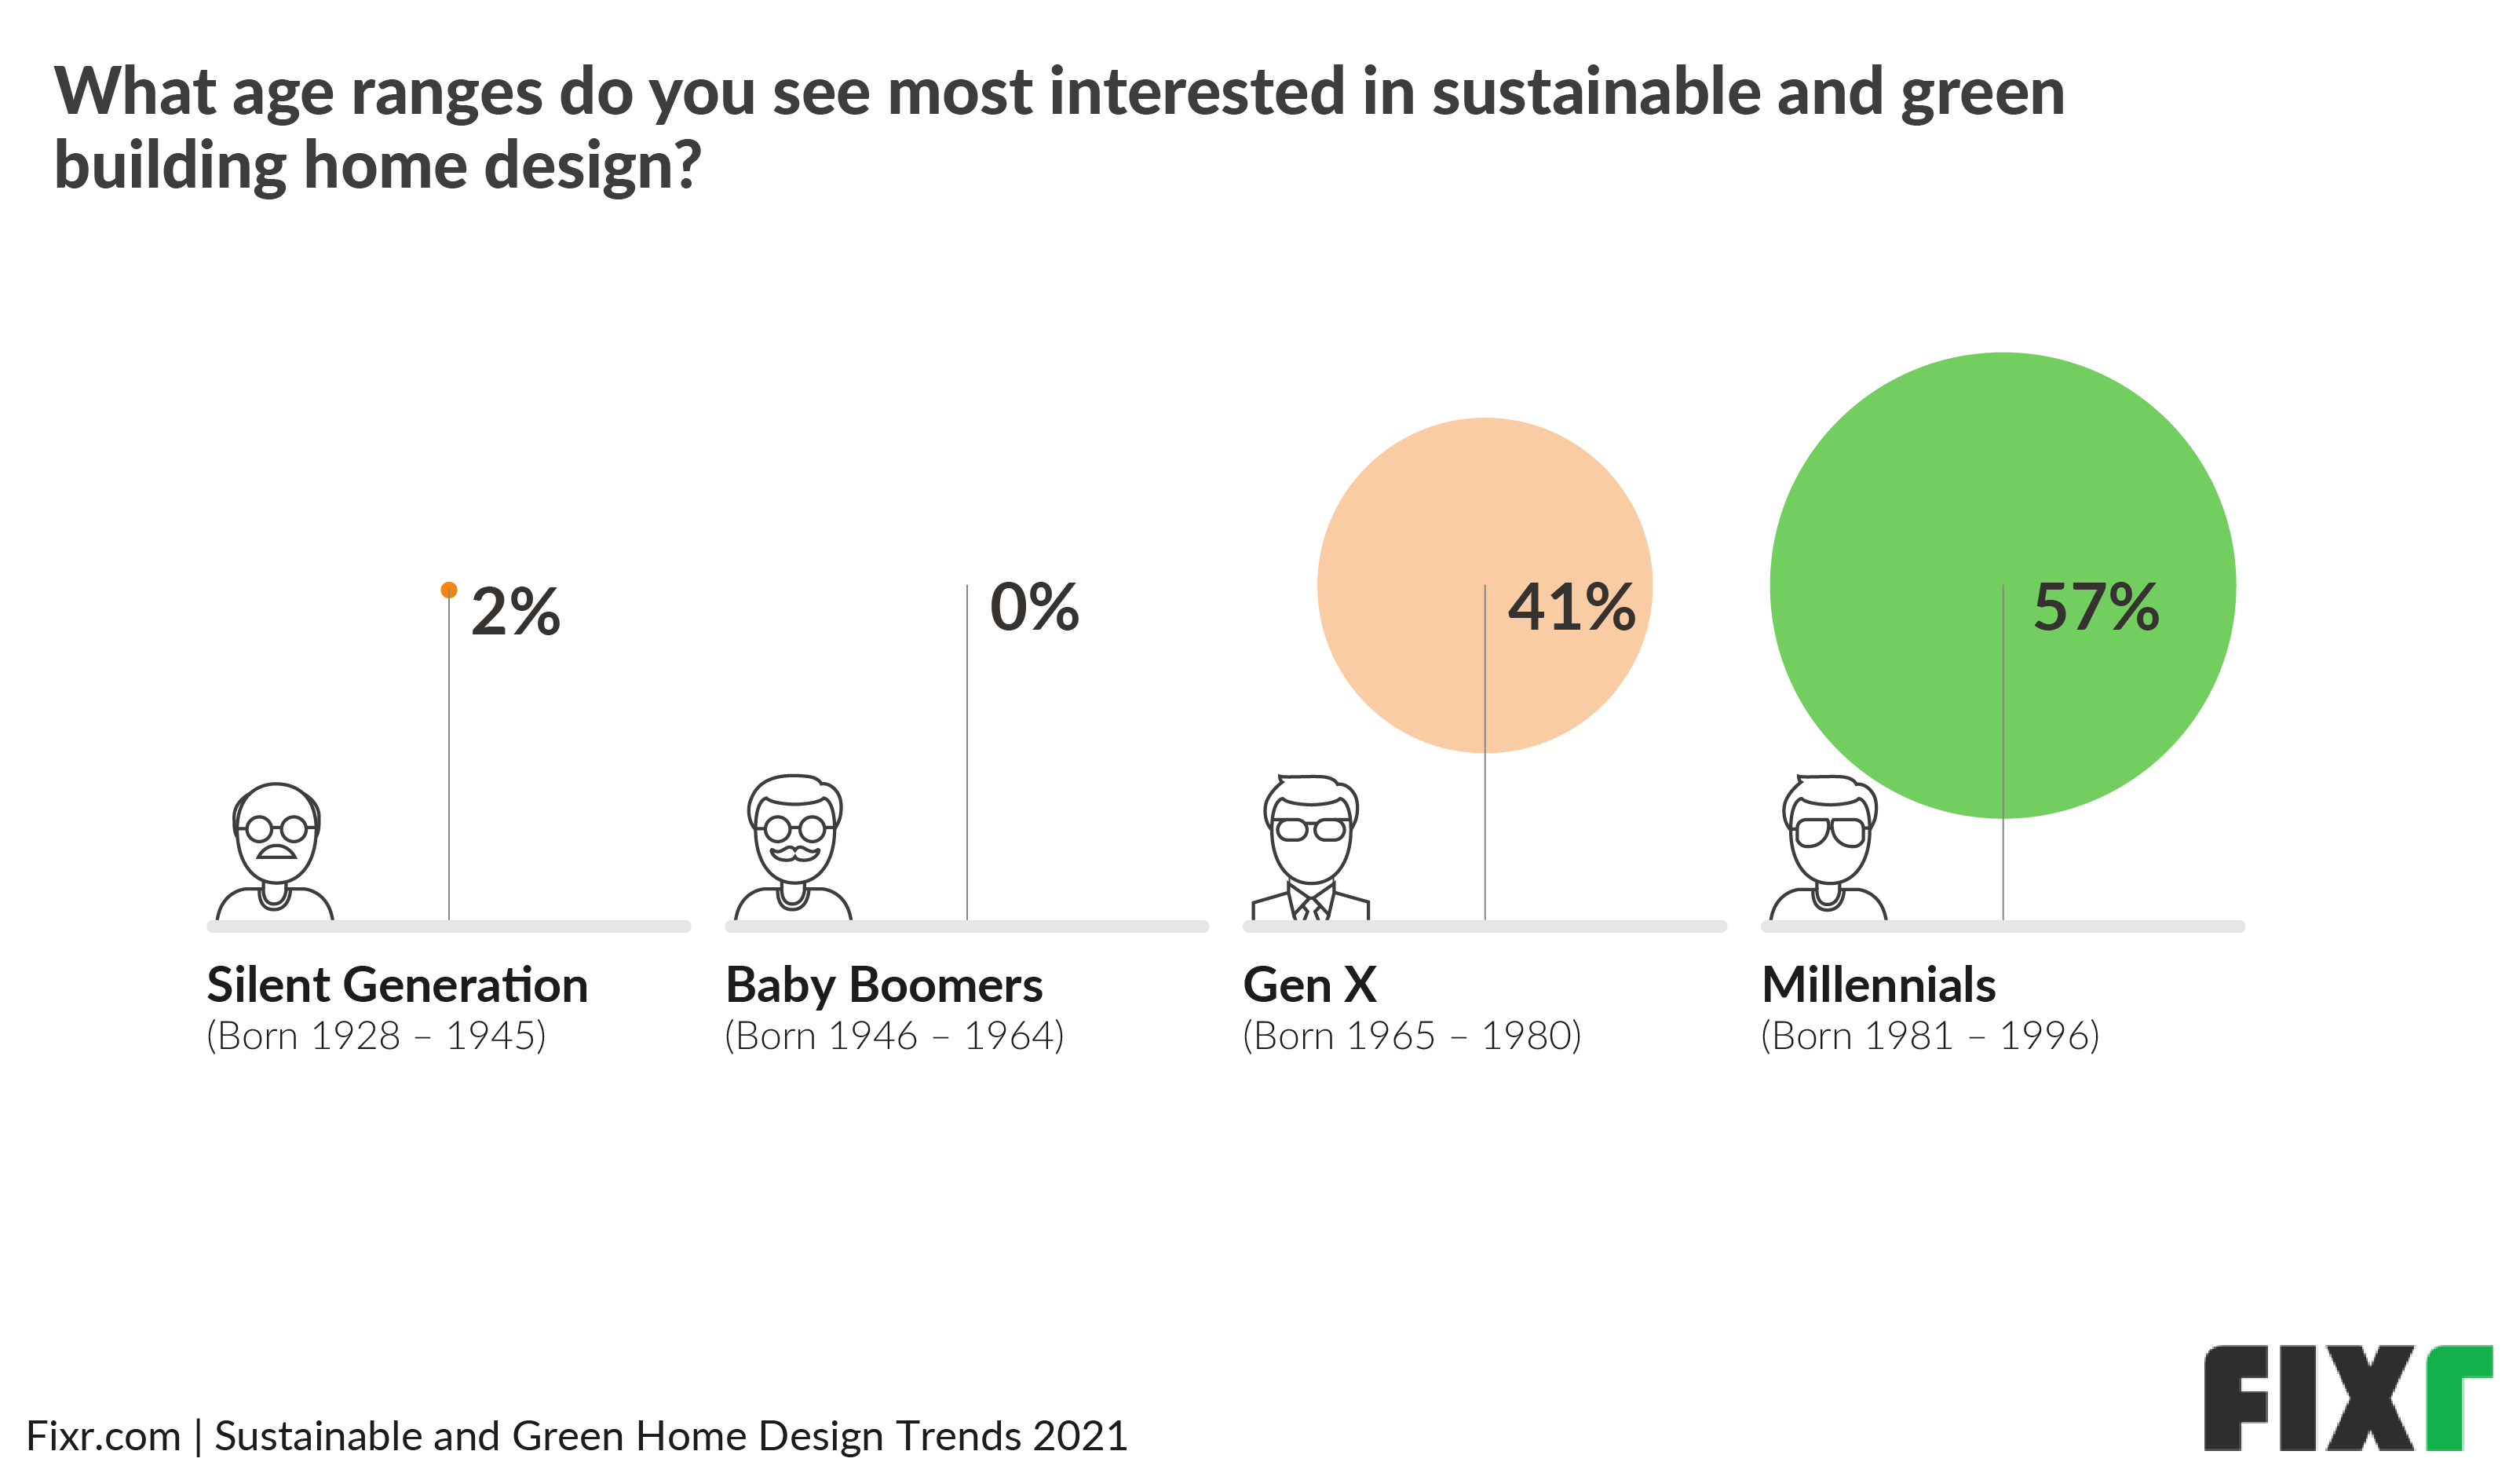 Millennials Are the Most Interested in Eco-Friendly Homes and Green Home Design